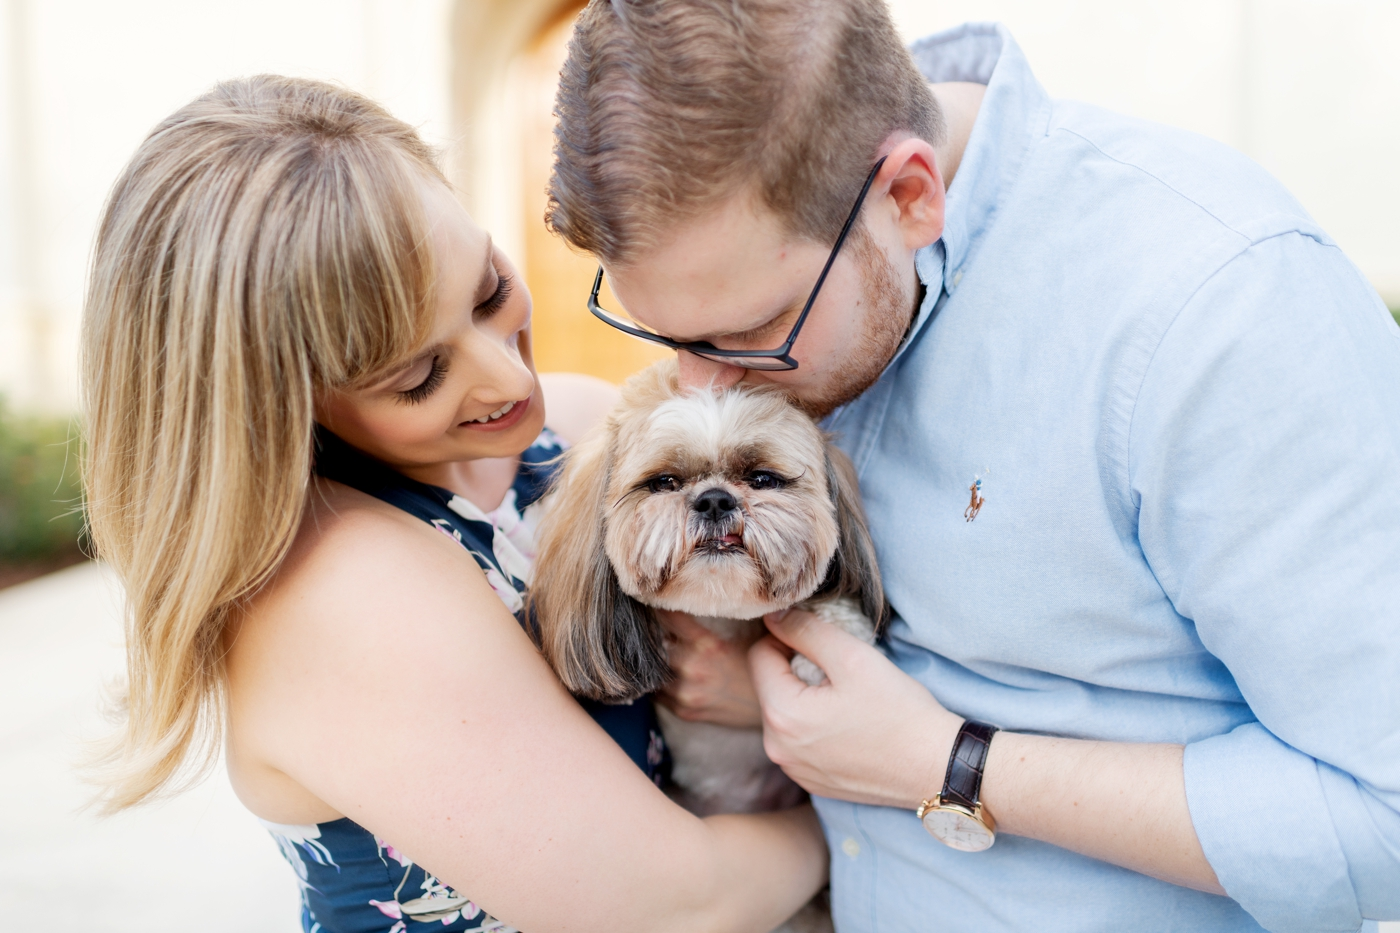 couples photography session with their dog